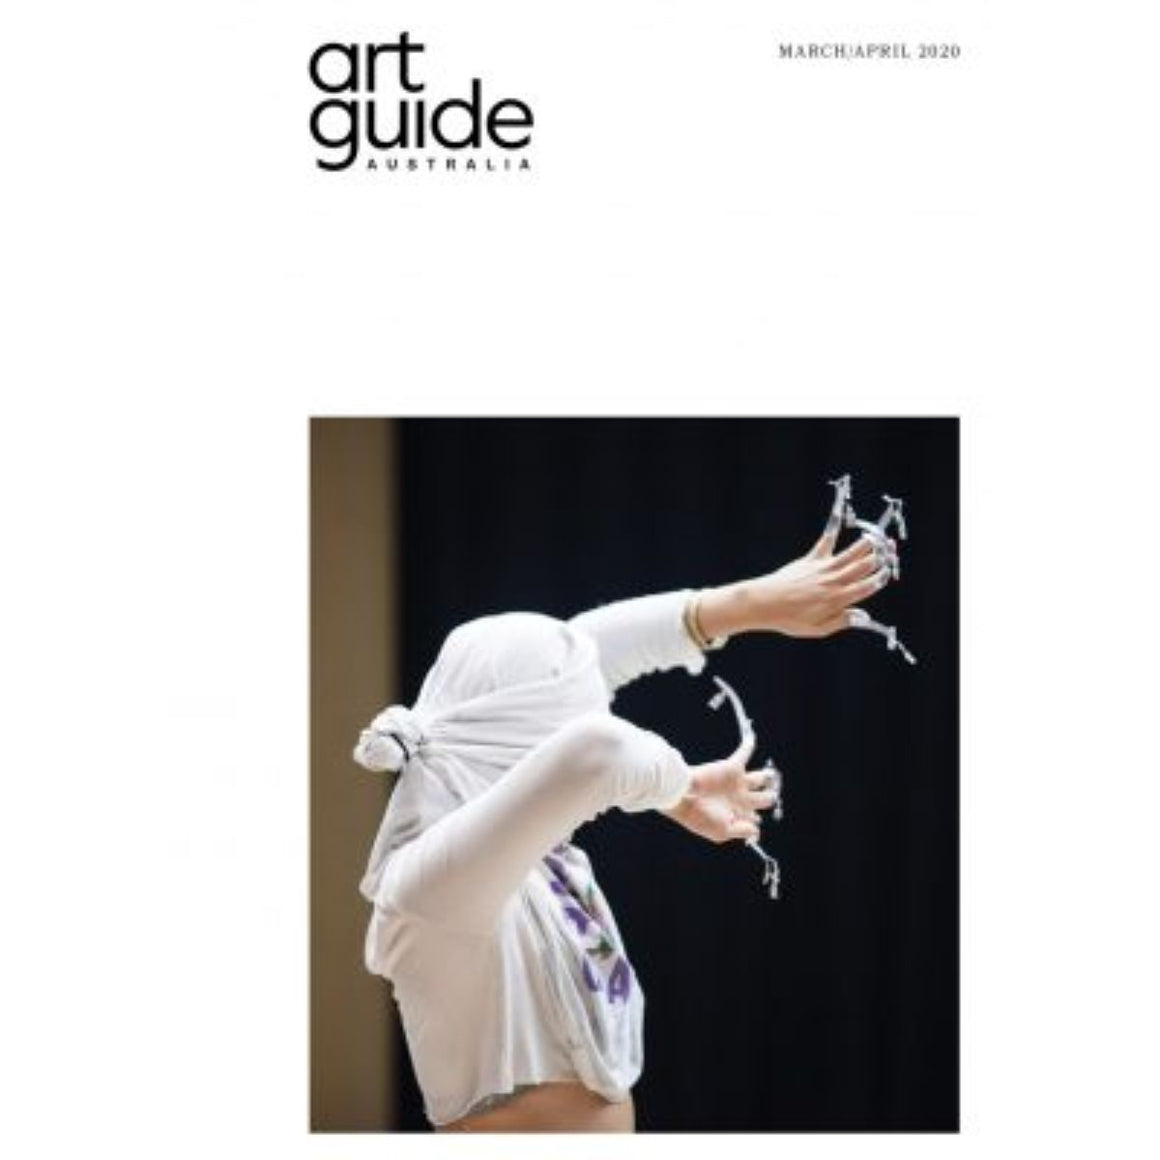 Magazine Cover featuring Issue March/April 2020 Art Guide